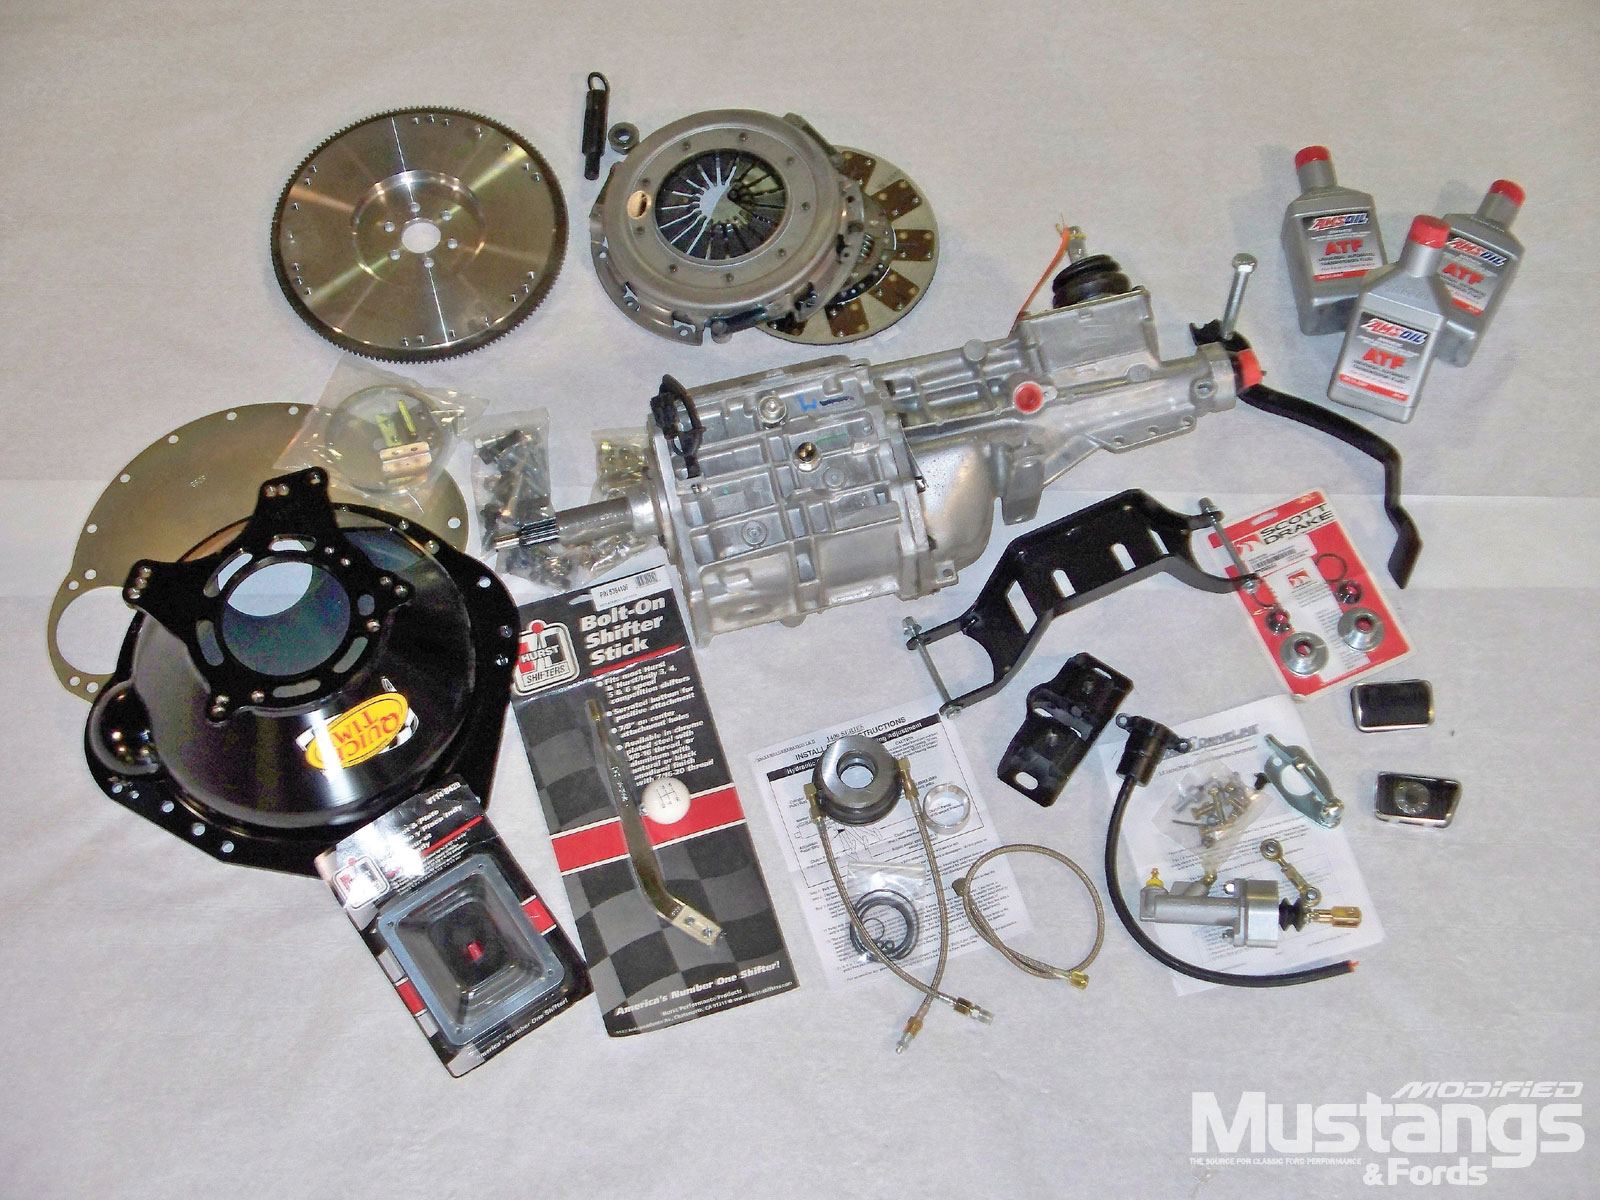 1969 Ford Mustang T5 Transmission Swap Rebuild Kit